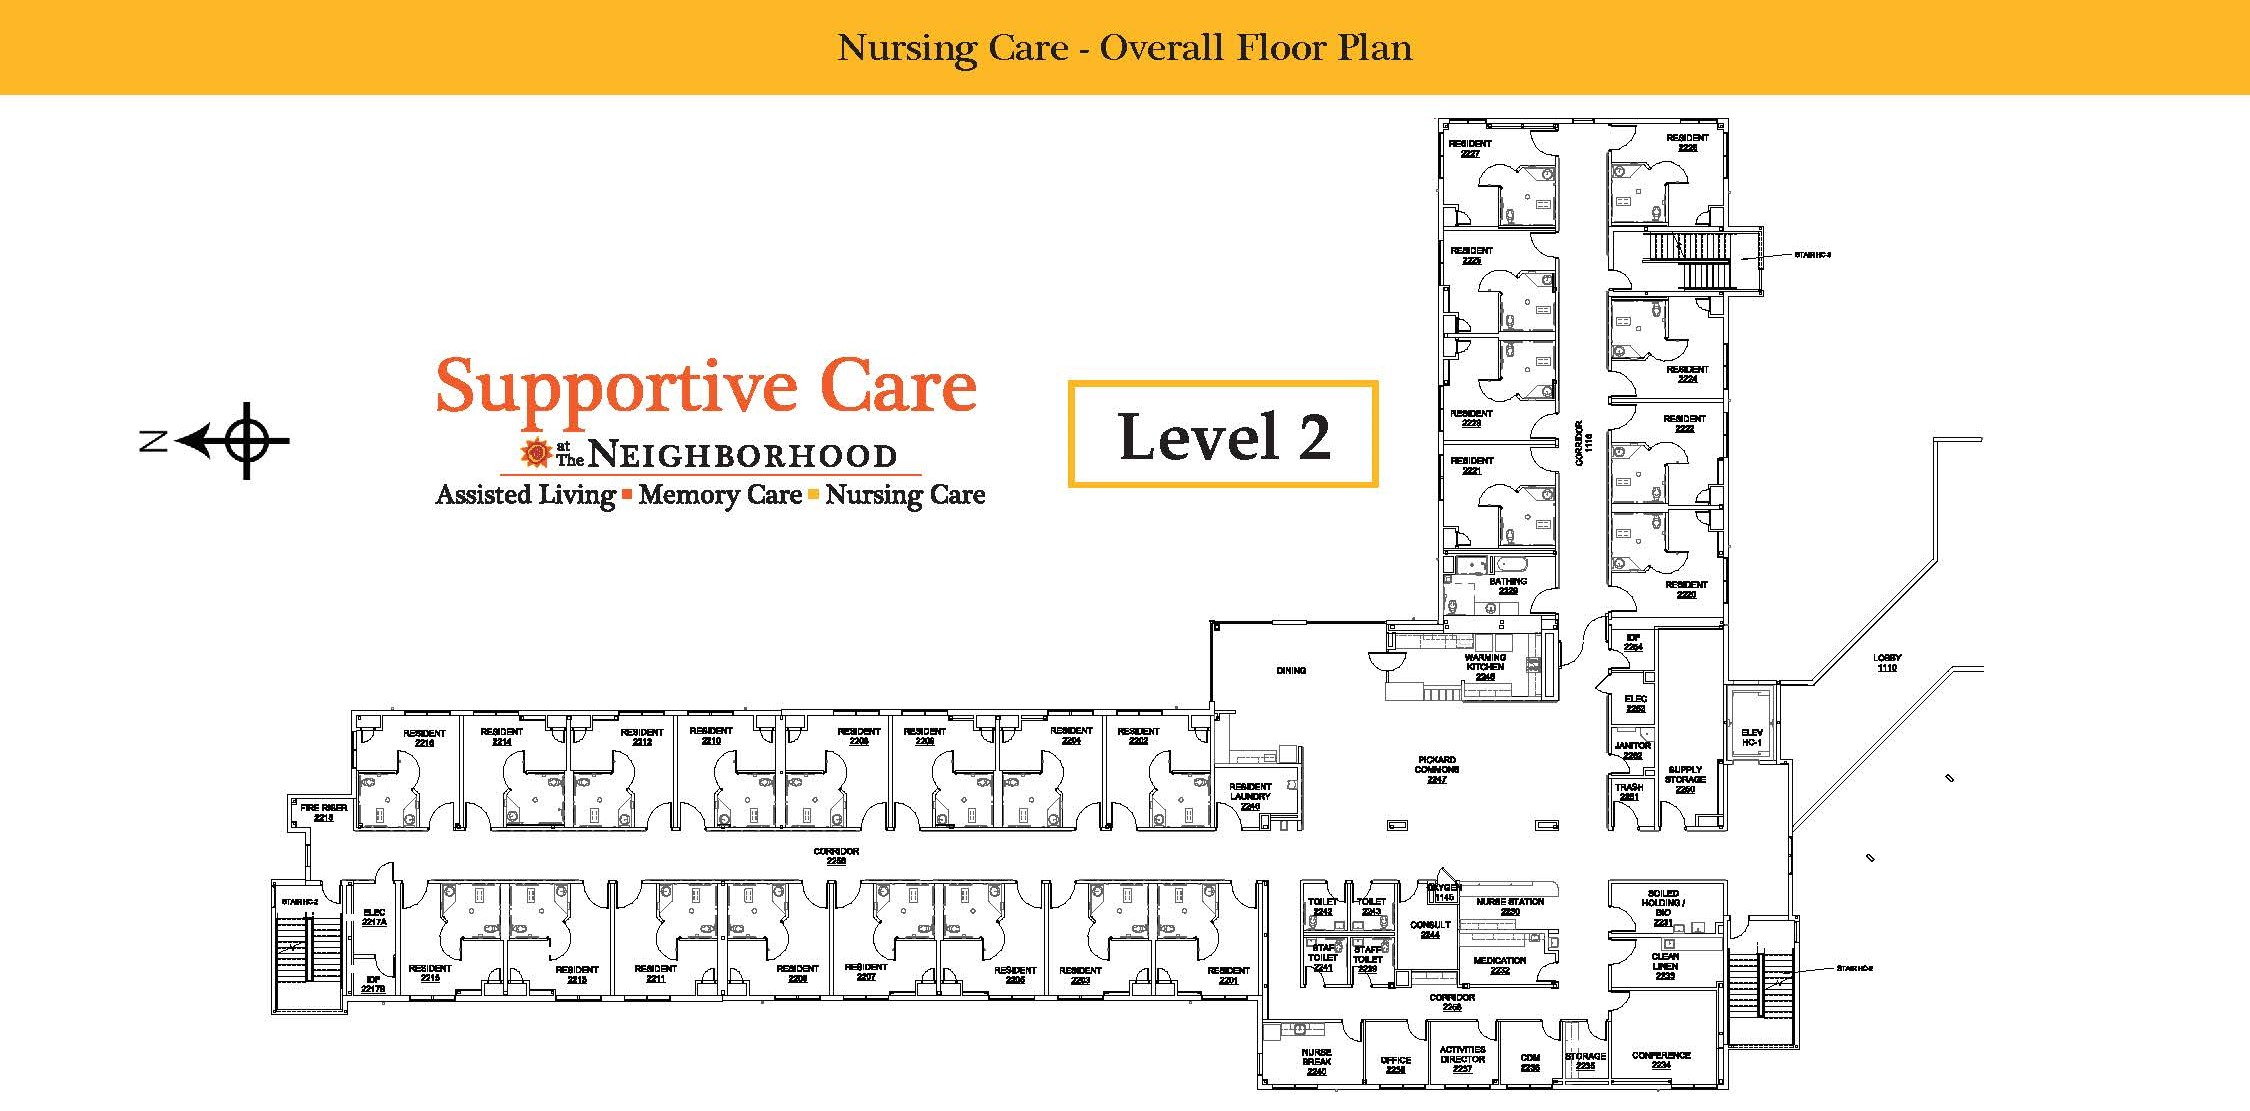 Nursing Care Level 2 Map